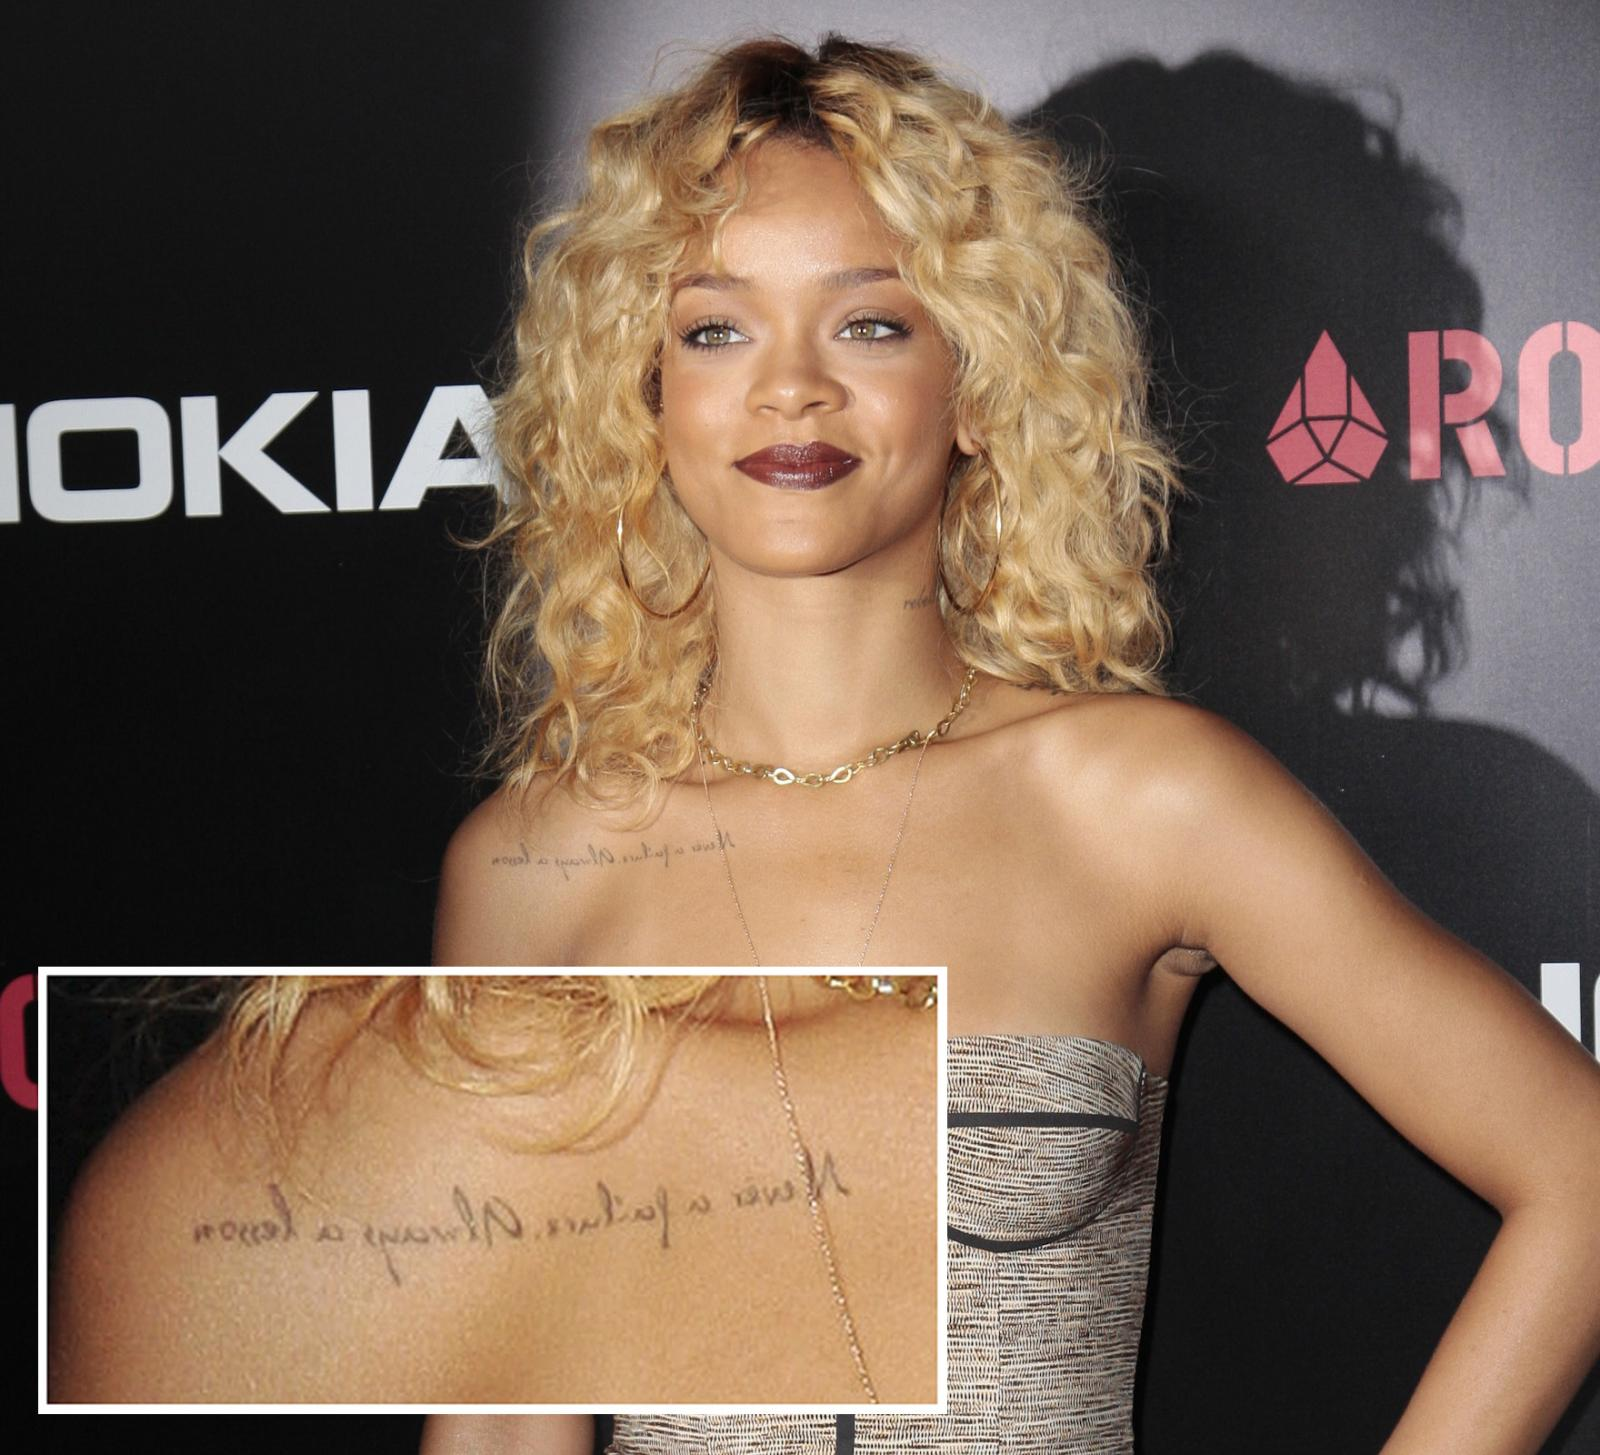 The Meaning Of Rihanna's Tattoos